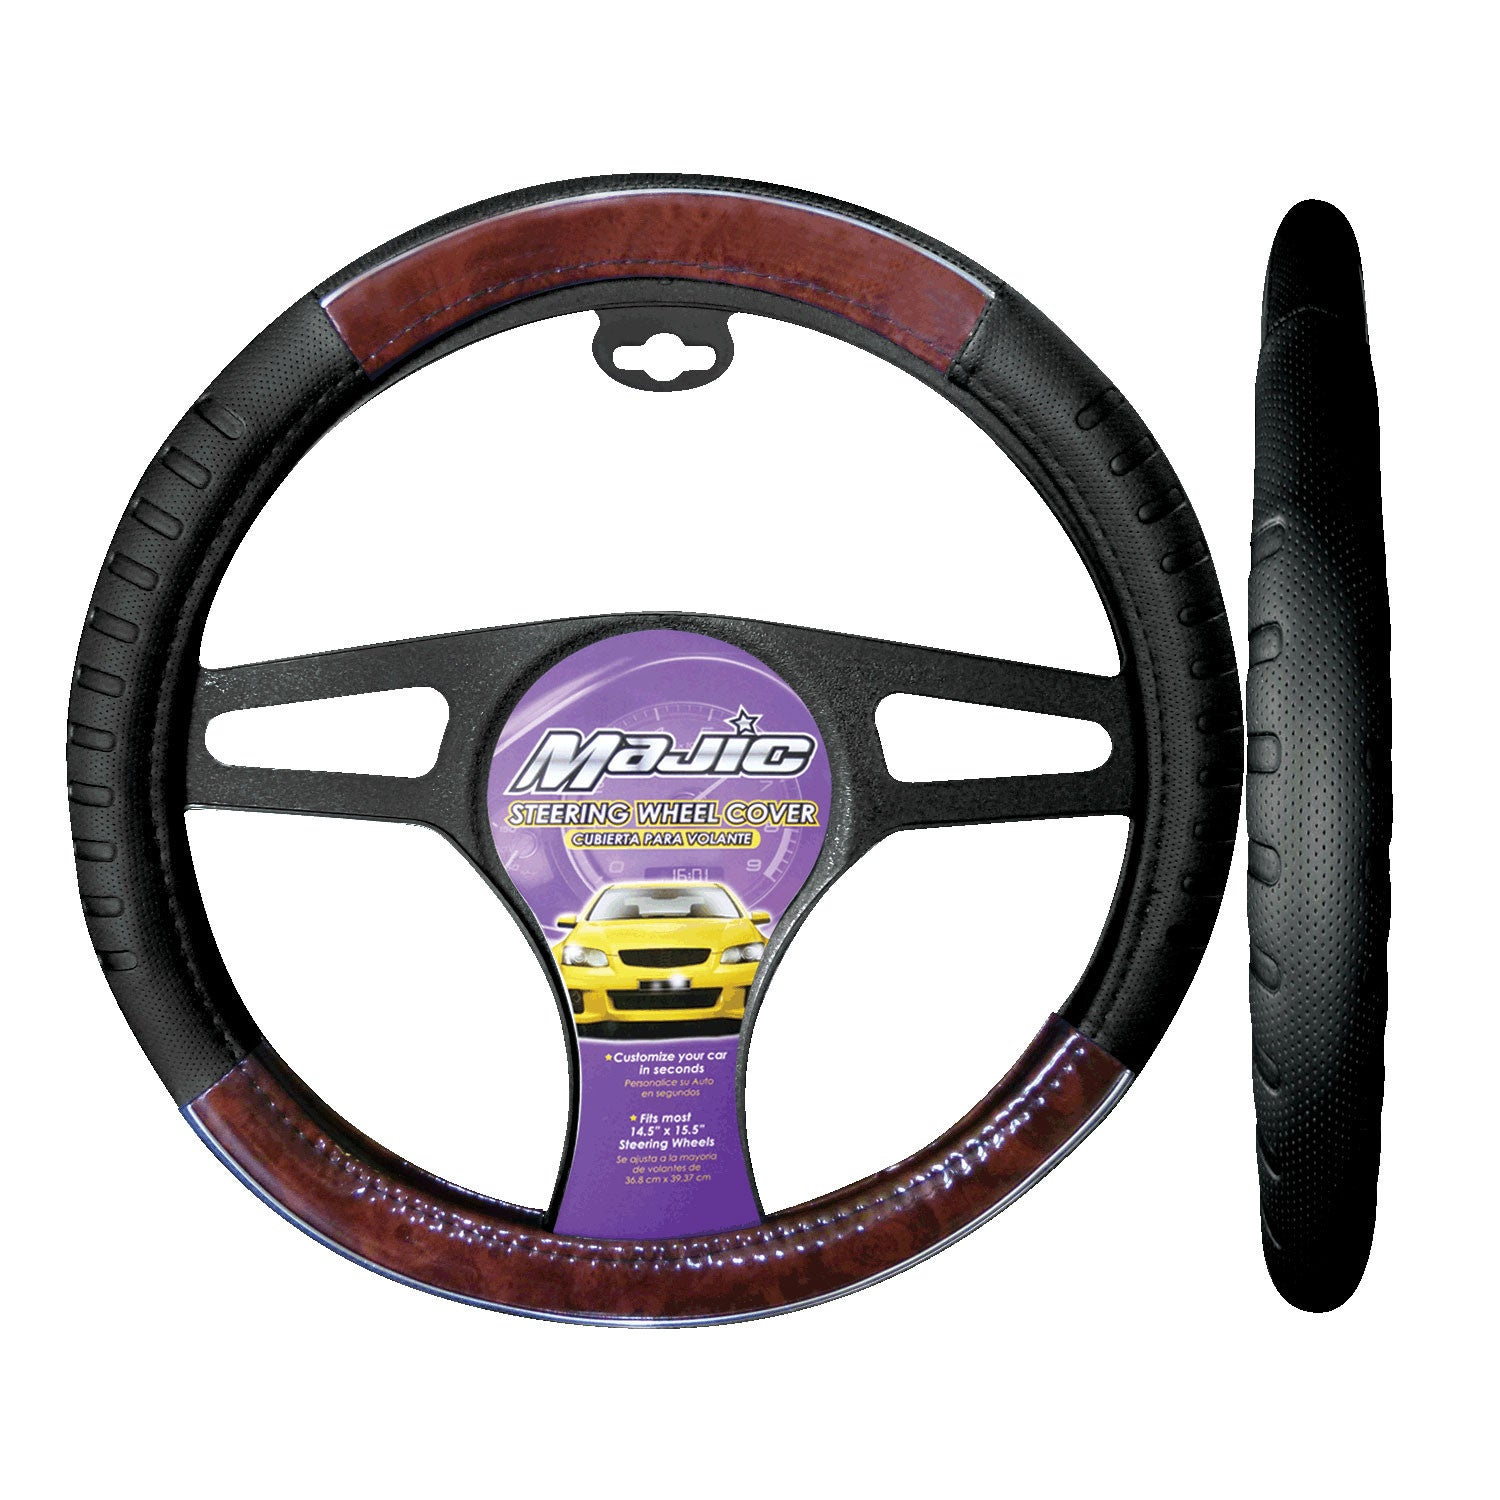 majic car steering wheel cover wood grain with chrome accent design improves comfort and style. Black Bedroom Furniture Sets. Home Design Ideas